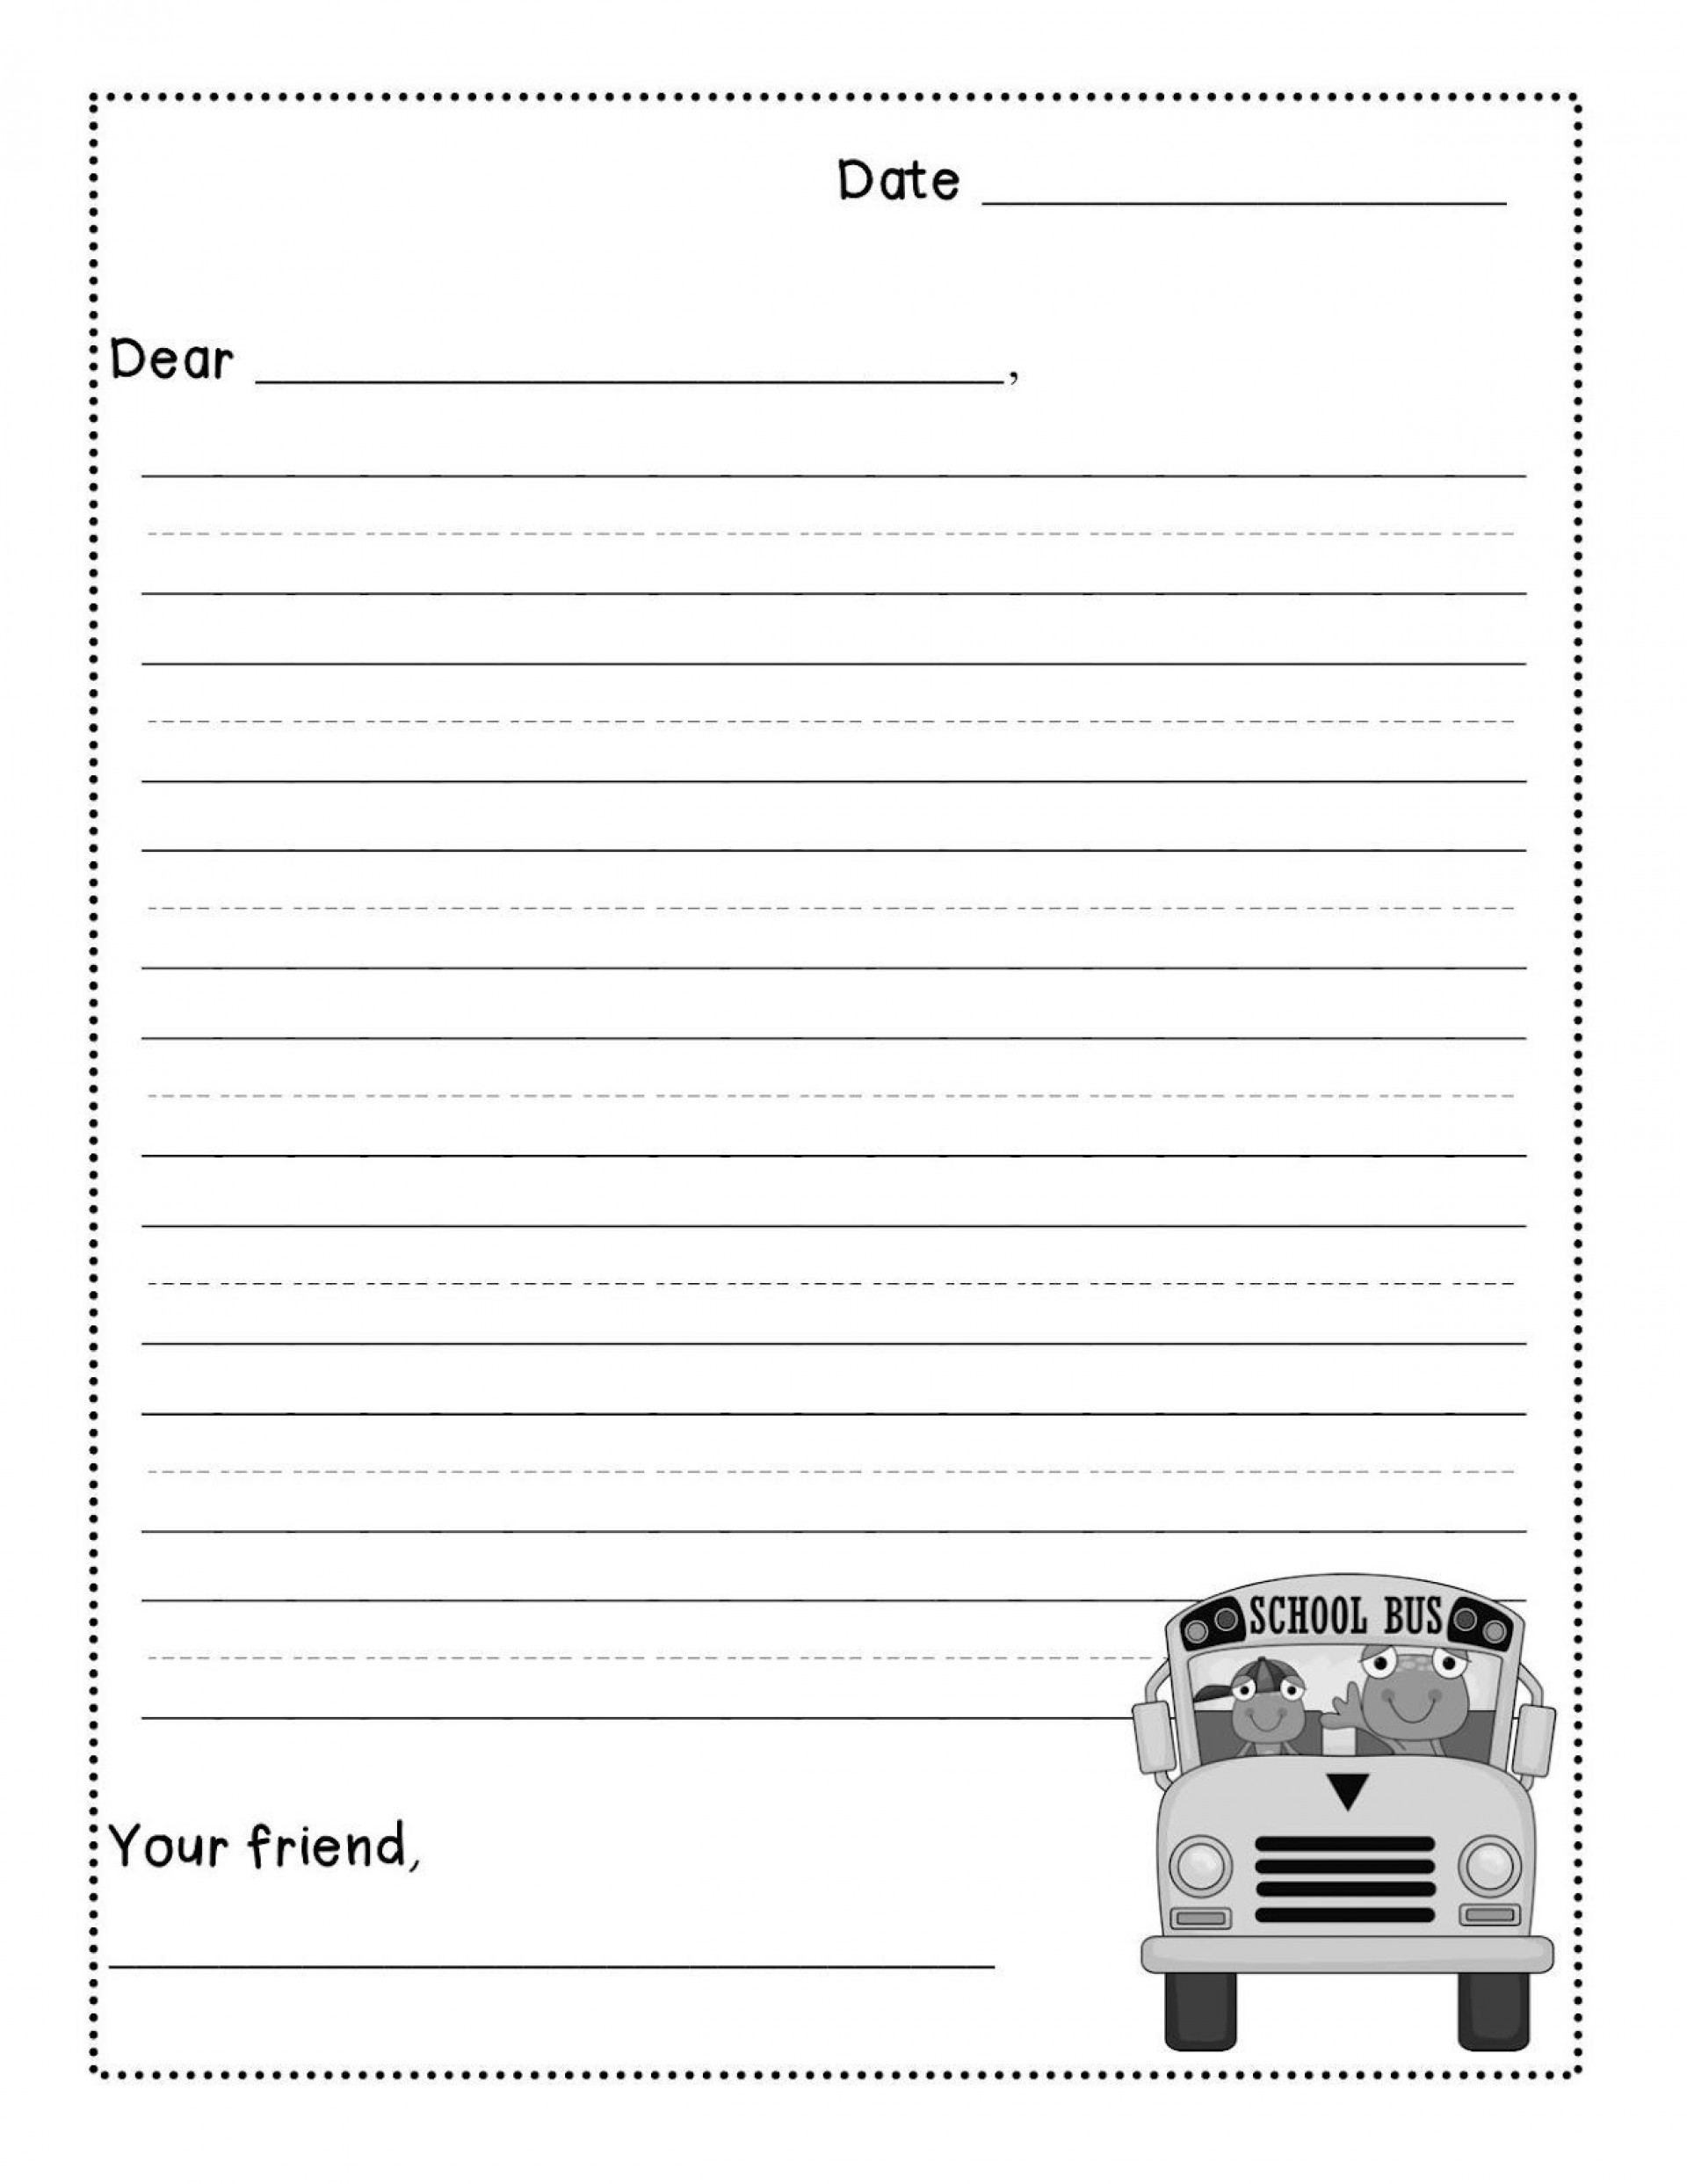 000 Beautiful Free Letter Writing Template 2nd Grade Sample 1920